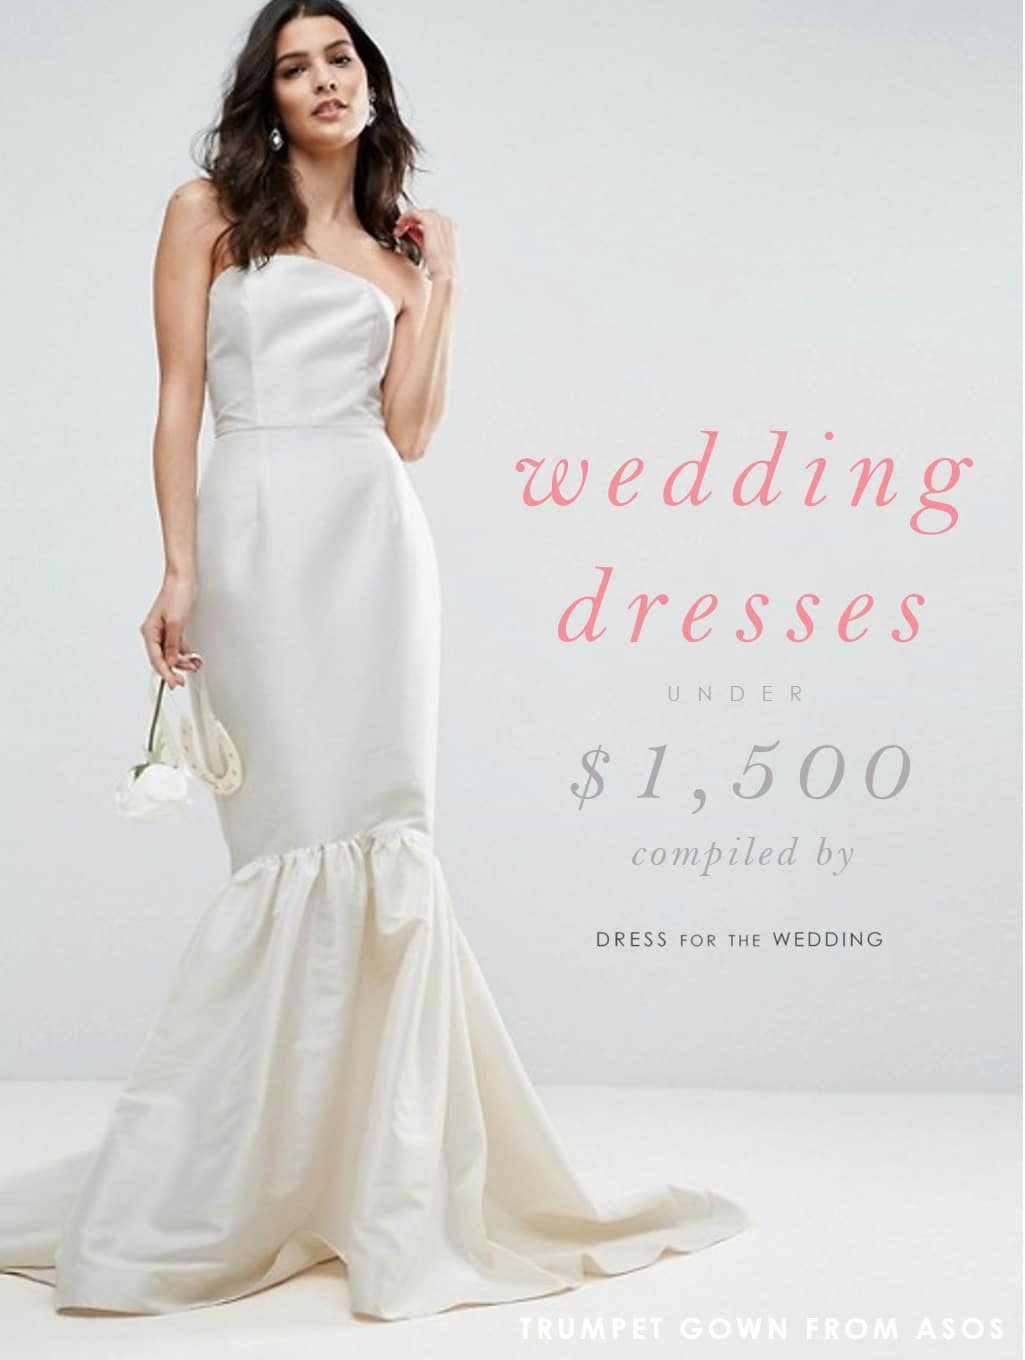 Wedding Dresses Under $1,500